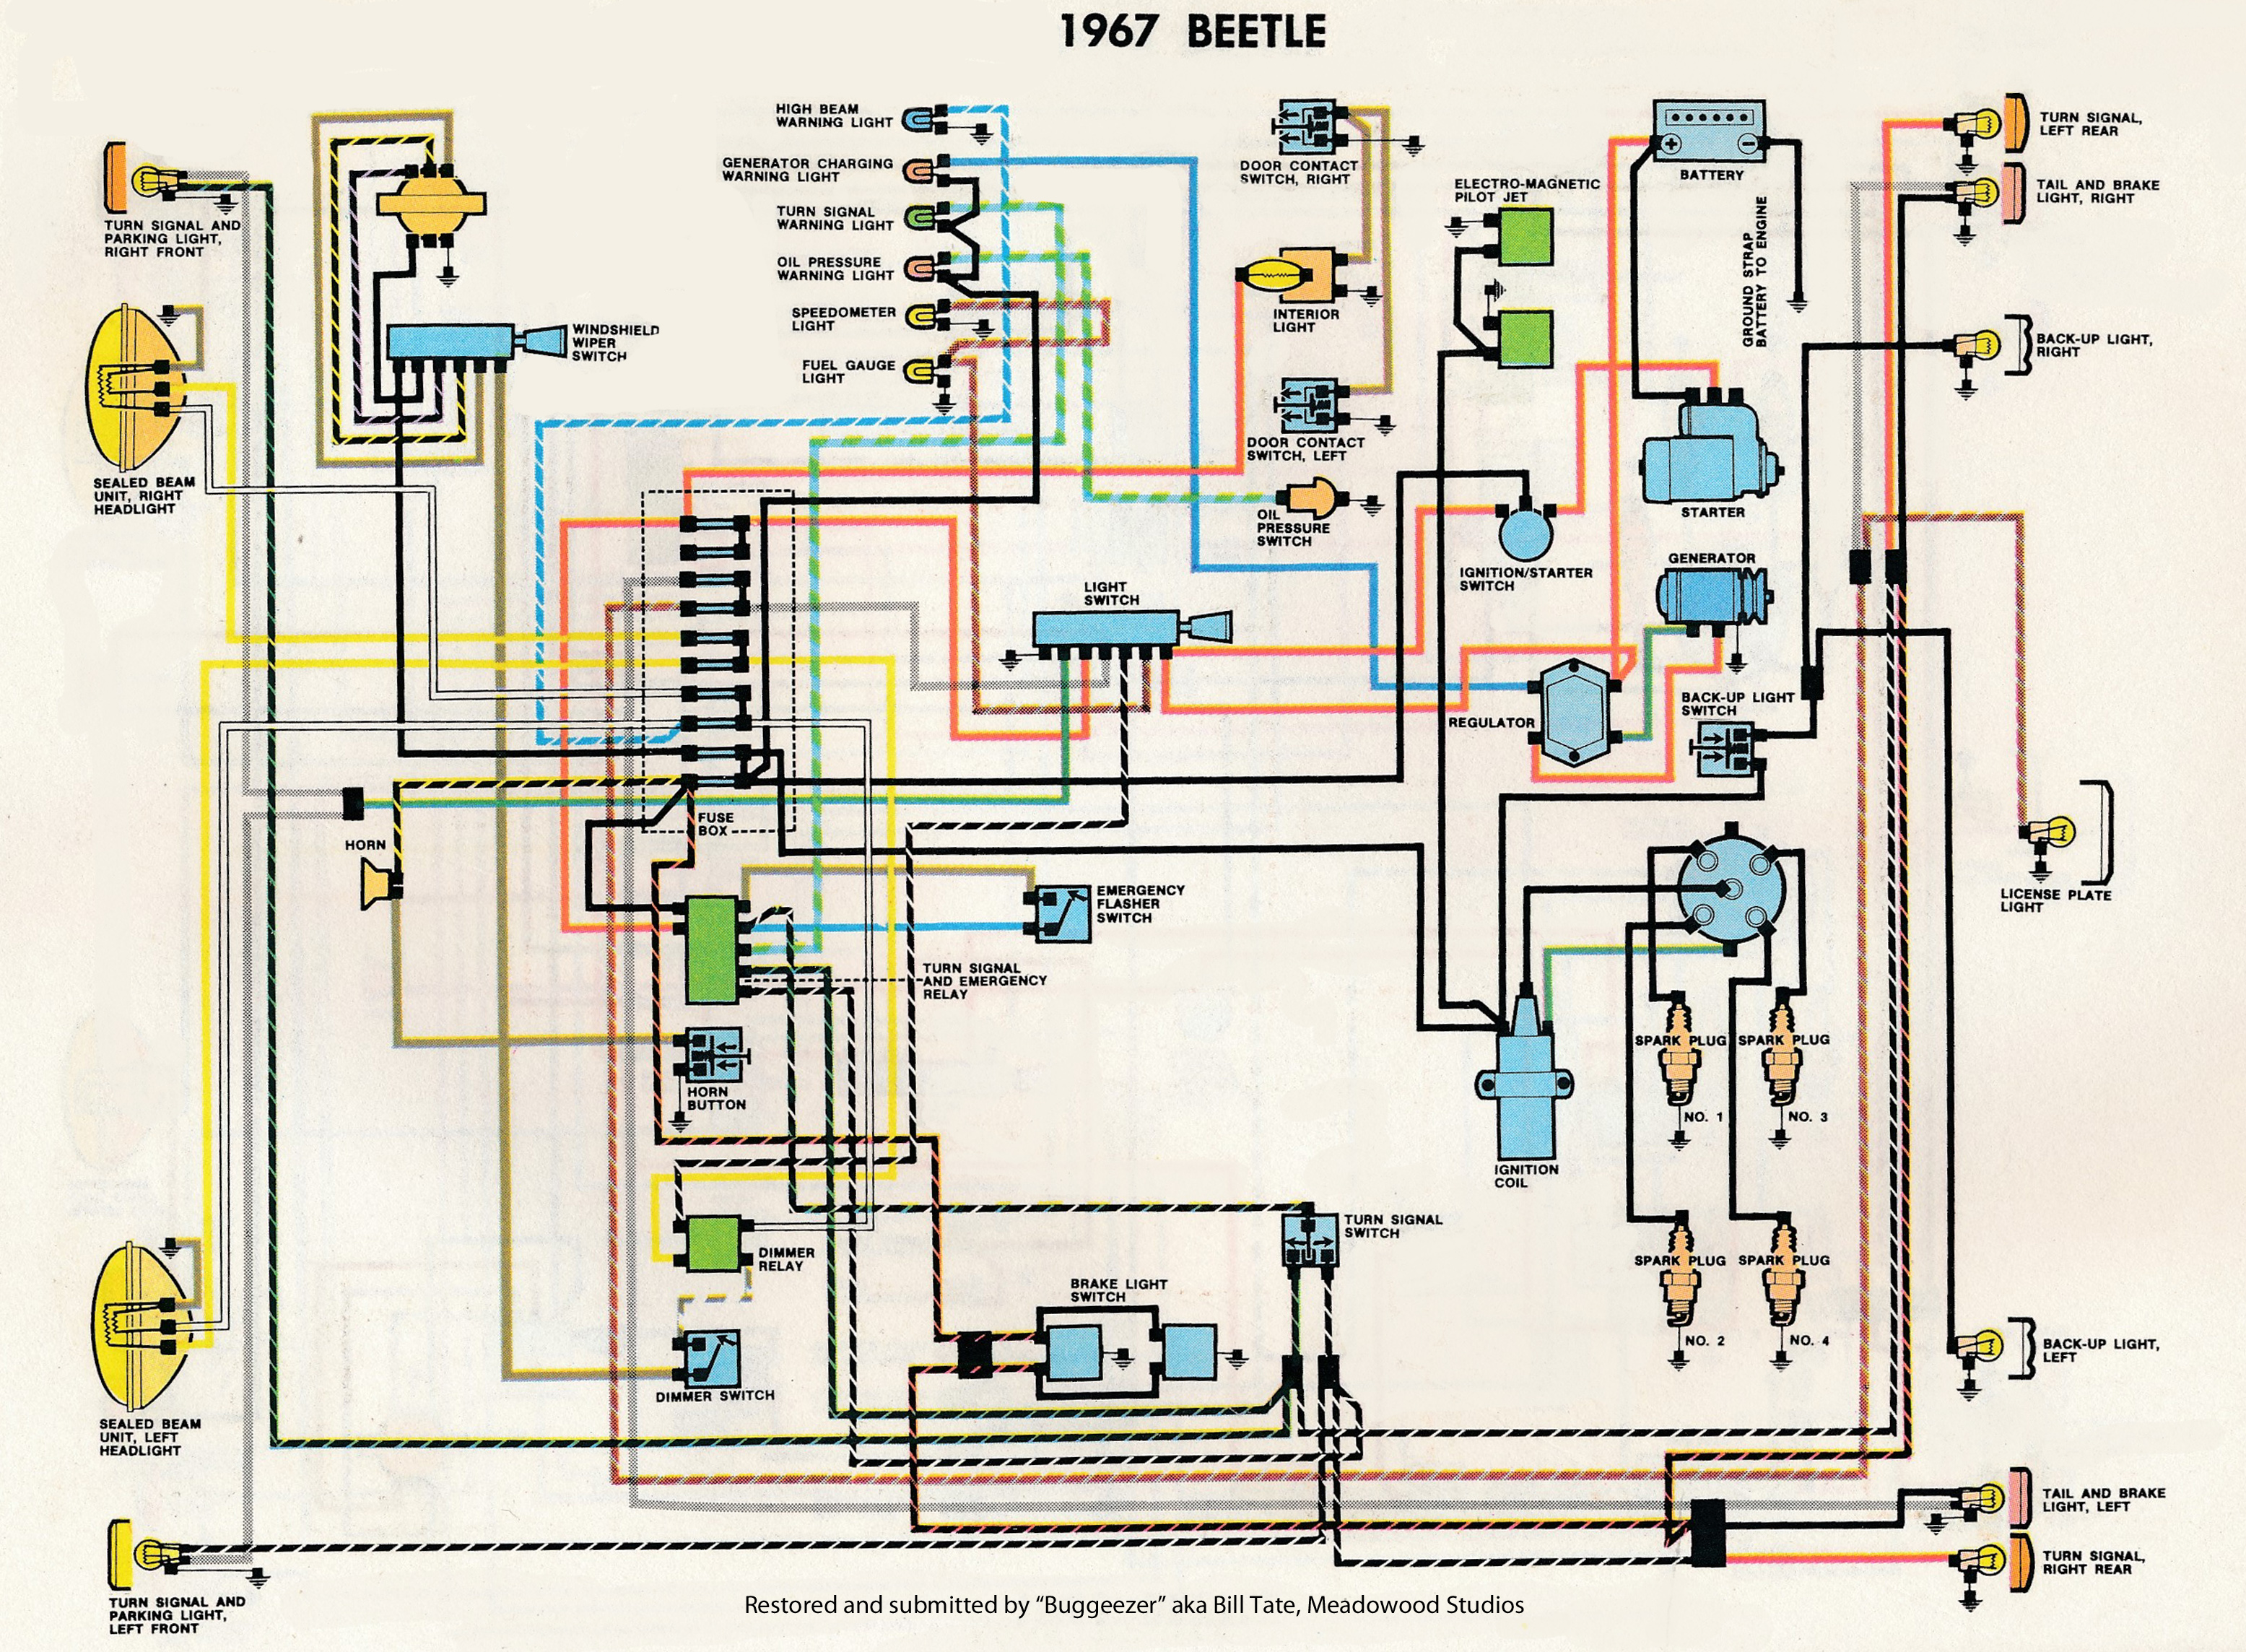 vw beetle wiring diagram holden vectra stereo 1966 motor get free image about